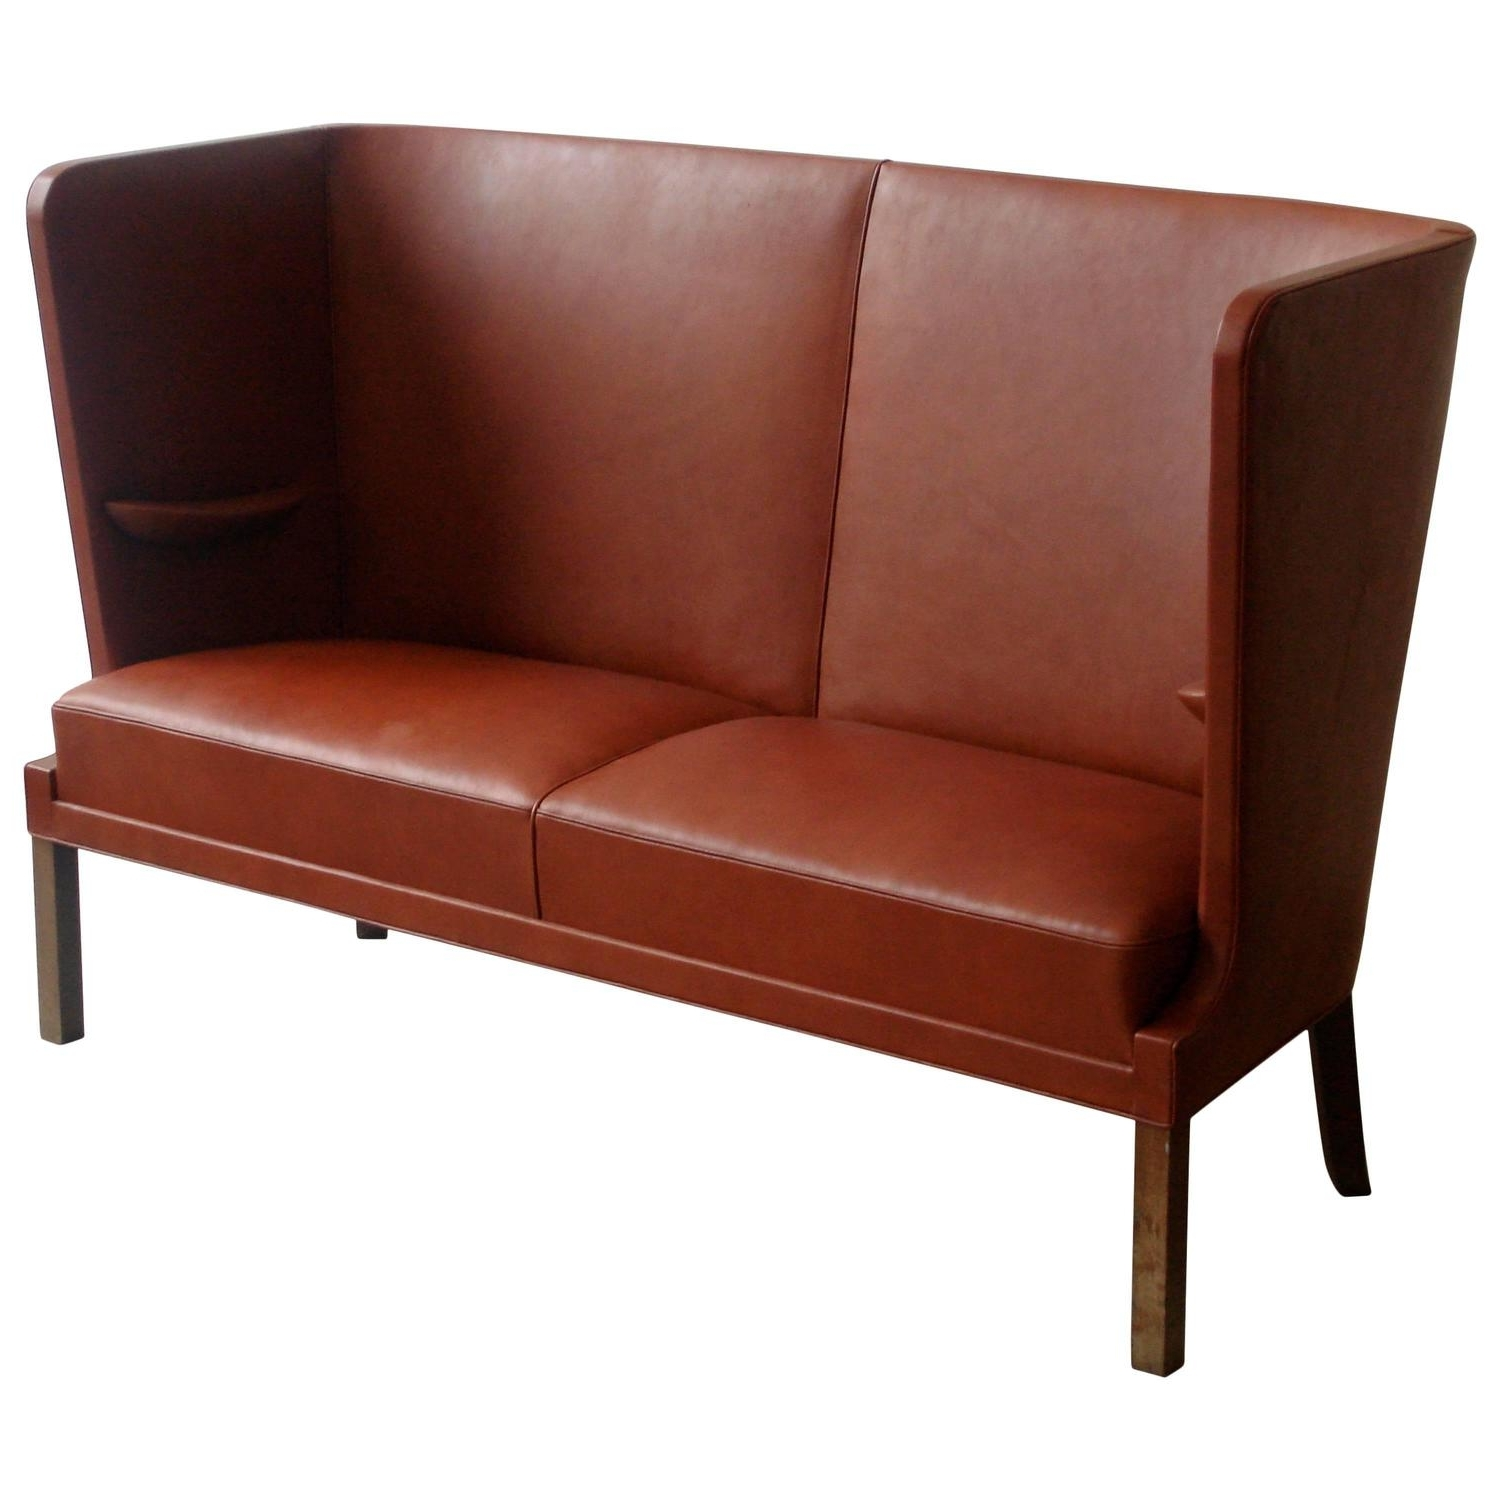 1930S Sofas – 122 For Sale At 1Stdibs Pertaining To Most Popular 1930S Sofas (View 2 of 15)